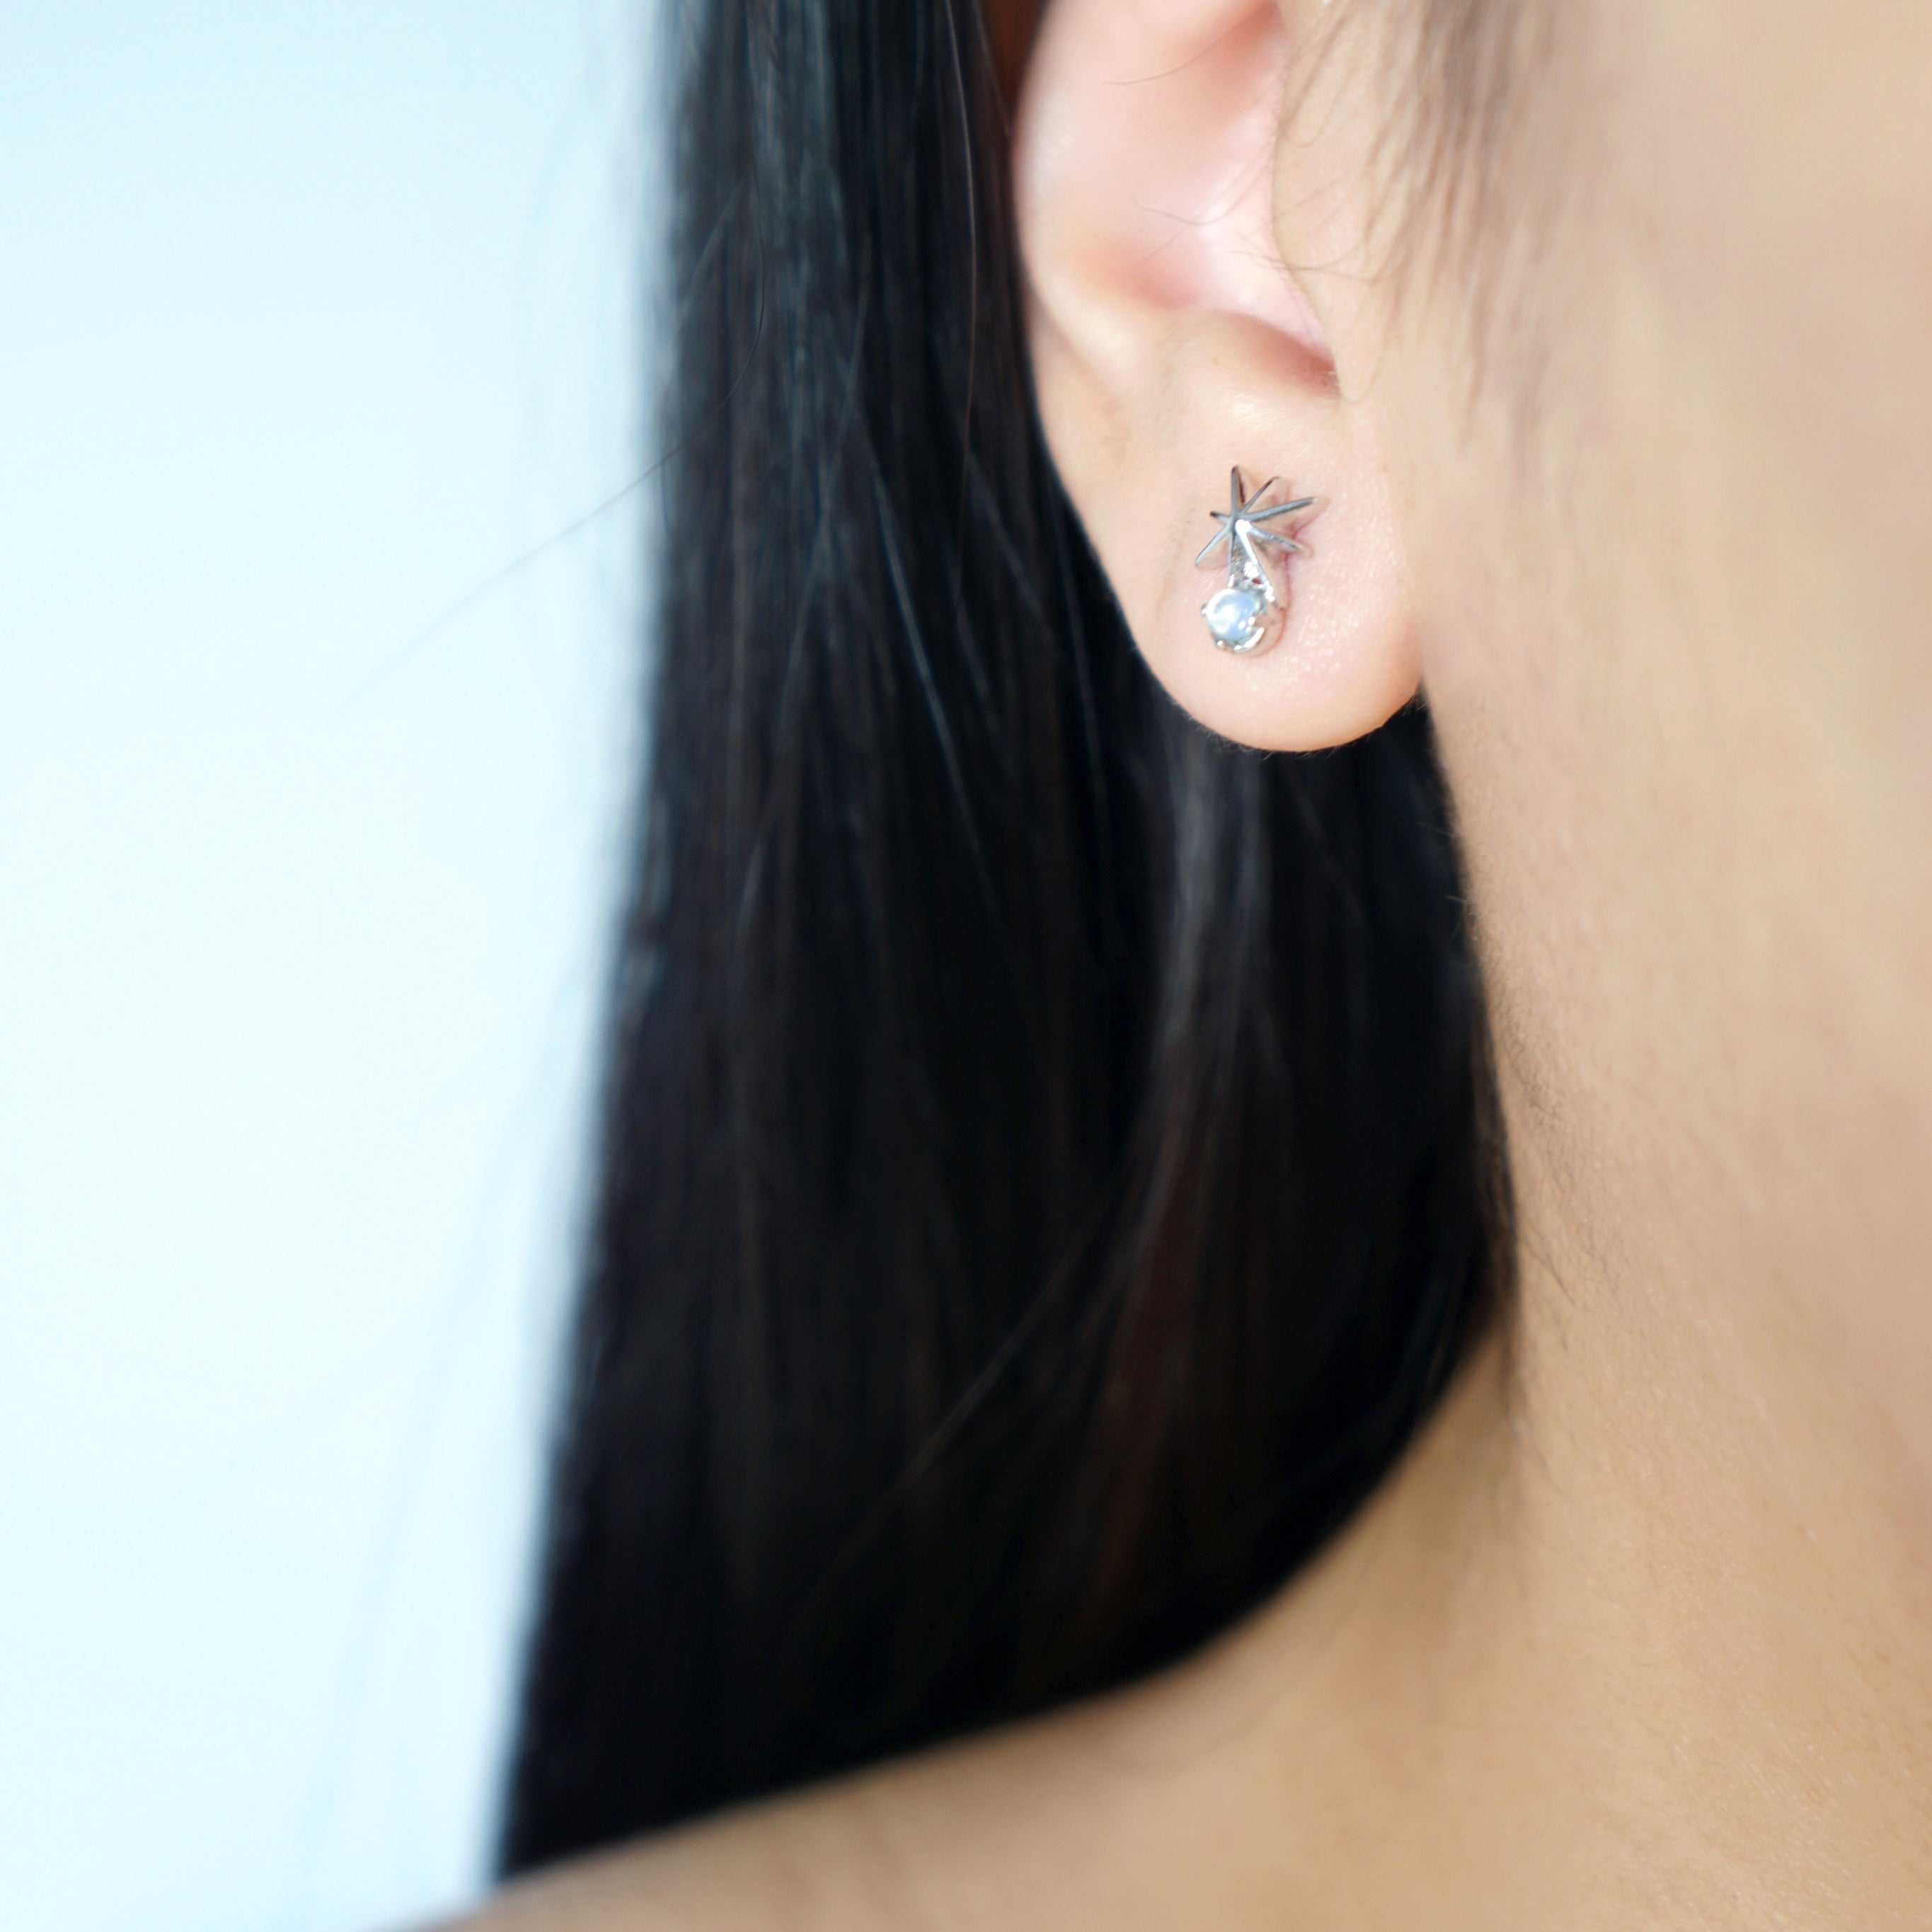 Stargaze Earrings in Silver - Moonstone